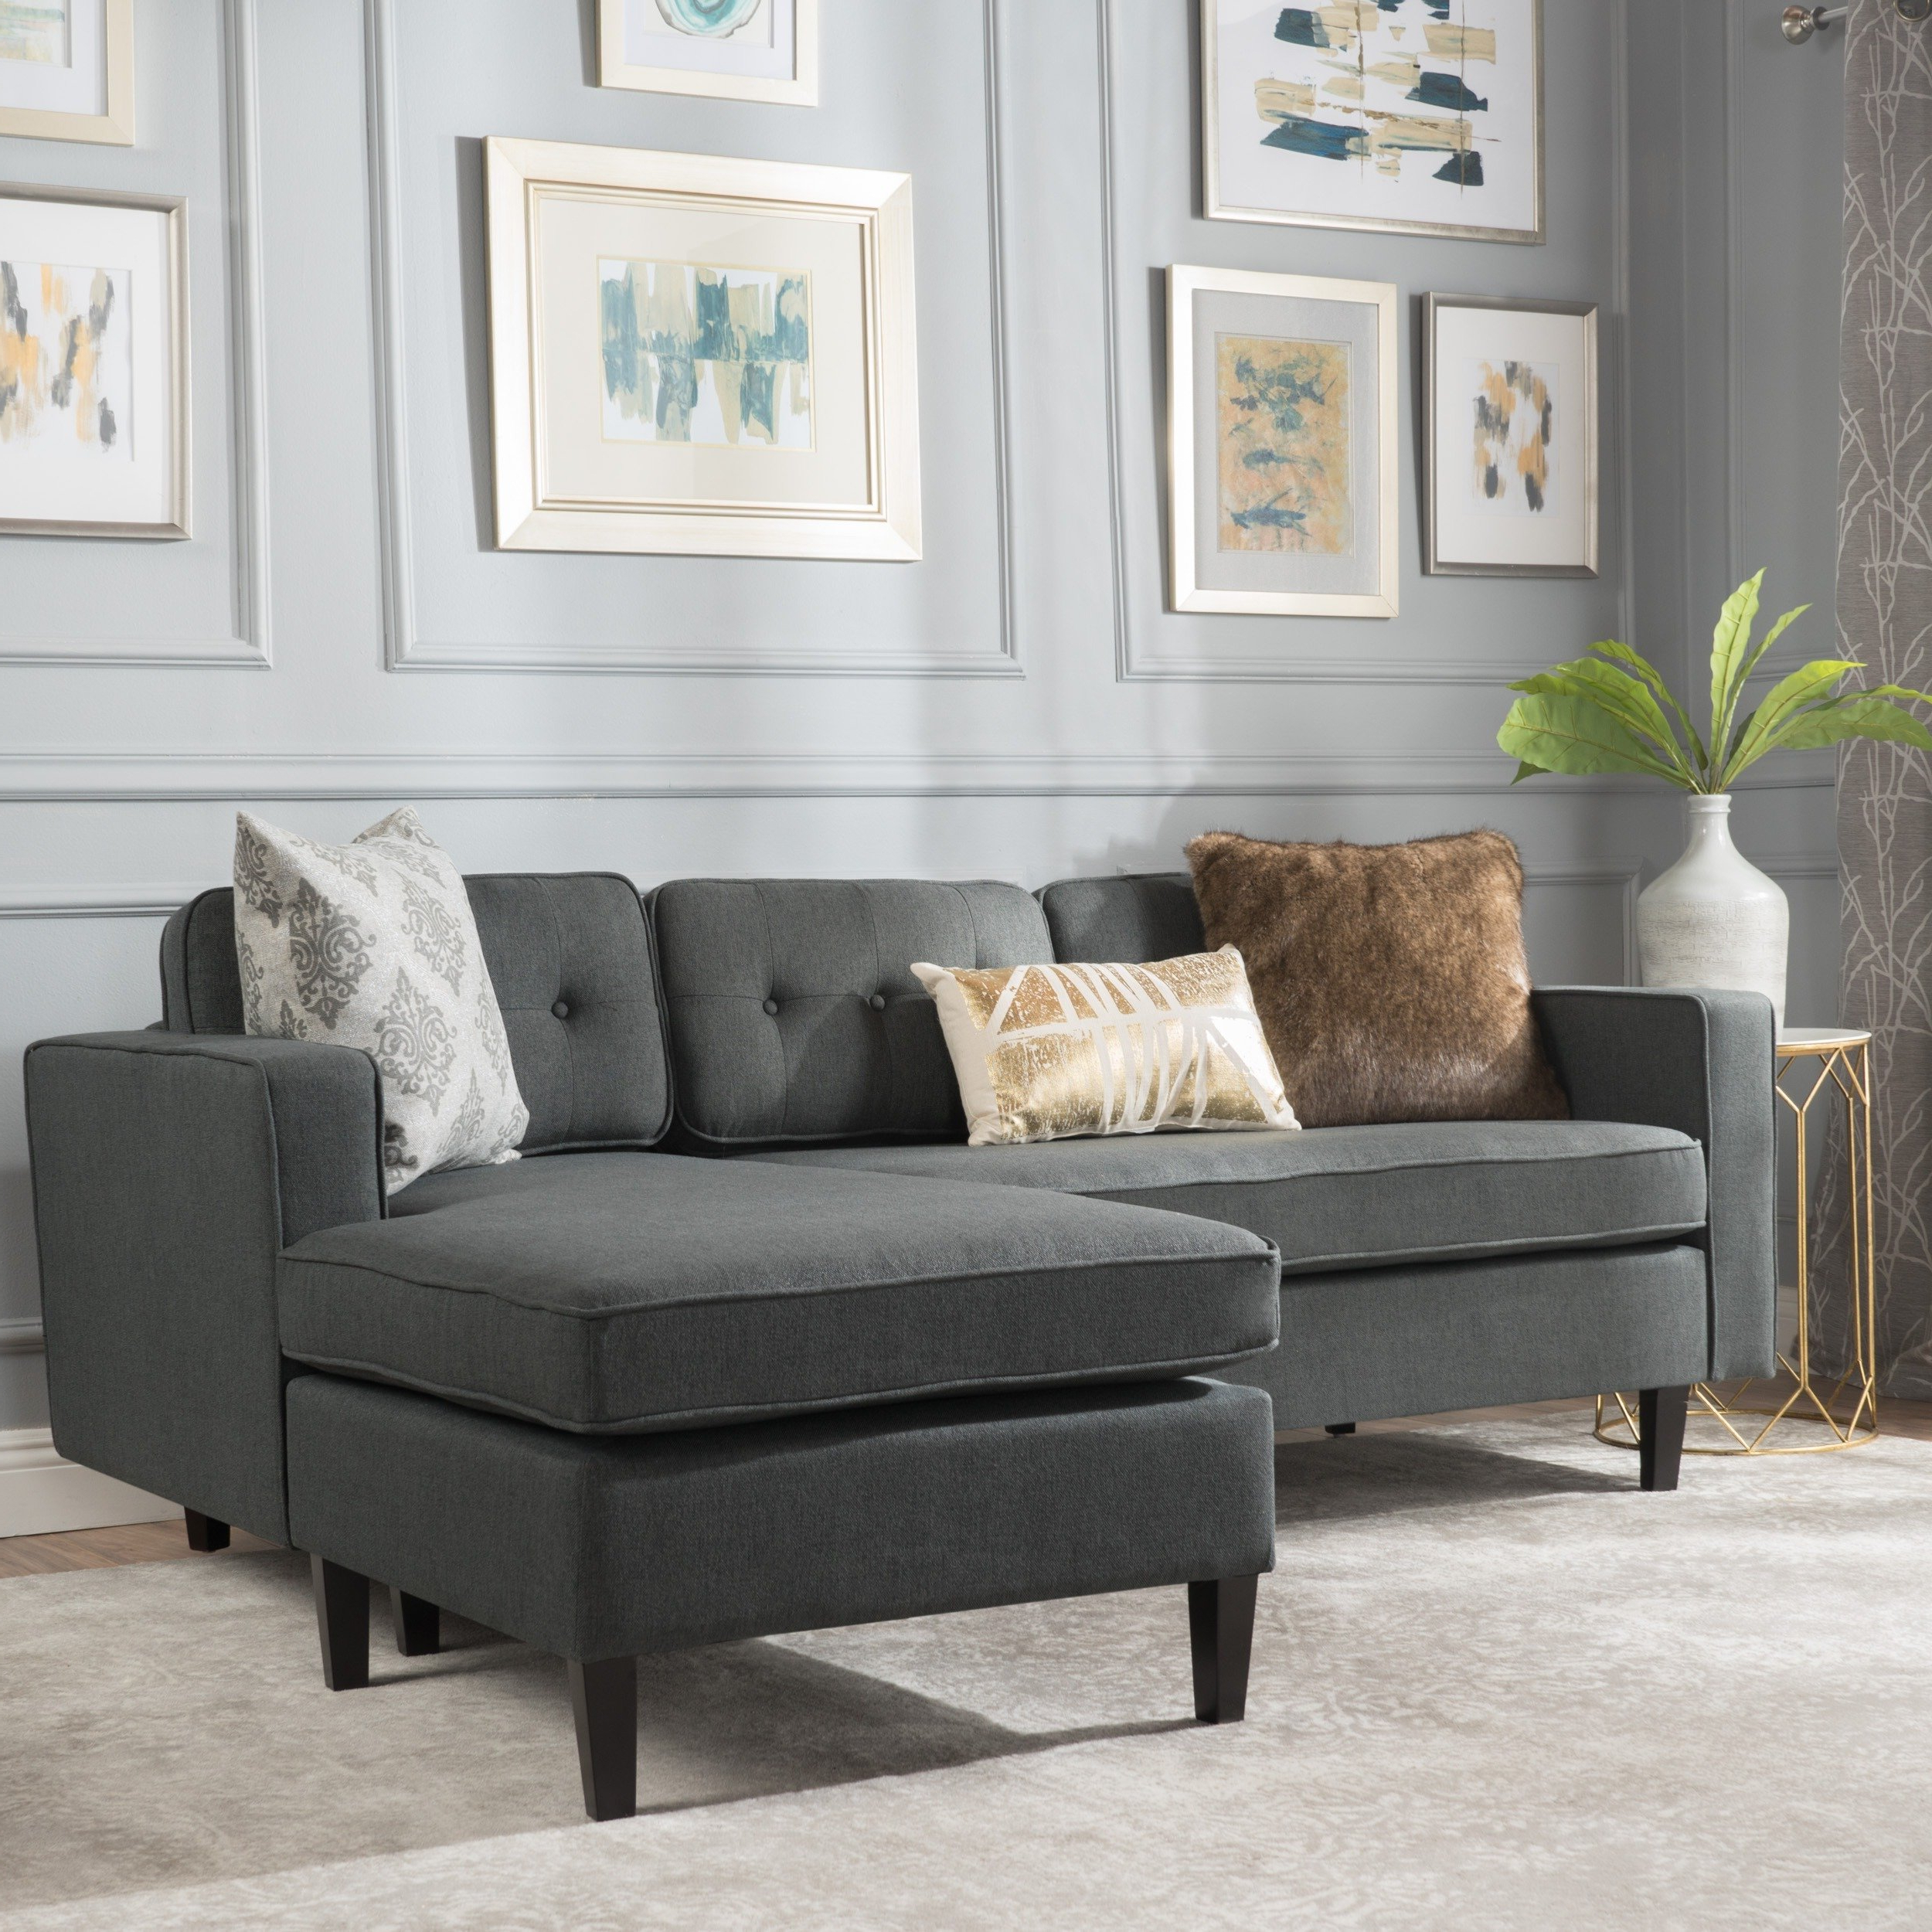 Baci Living Room Pertaining To Tenny Cognac 2 Piece Left Facing Chaise Sectionals With 2 Headrest (View 11 of 20)